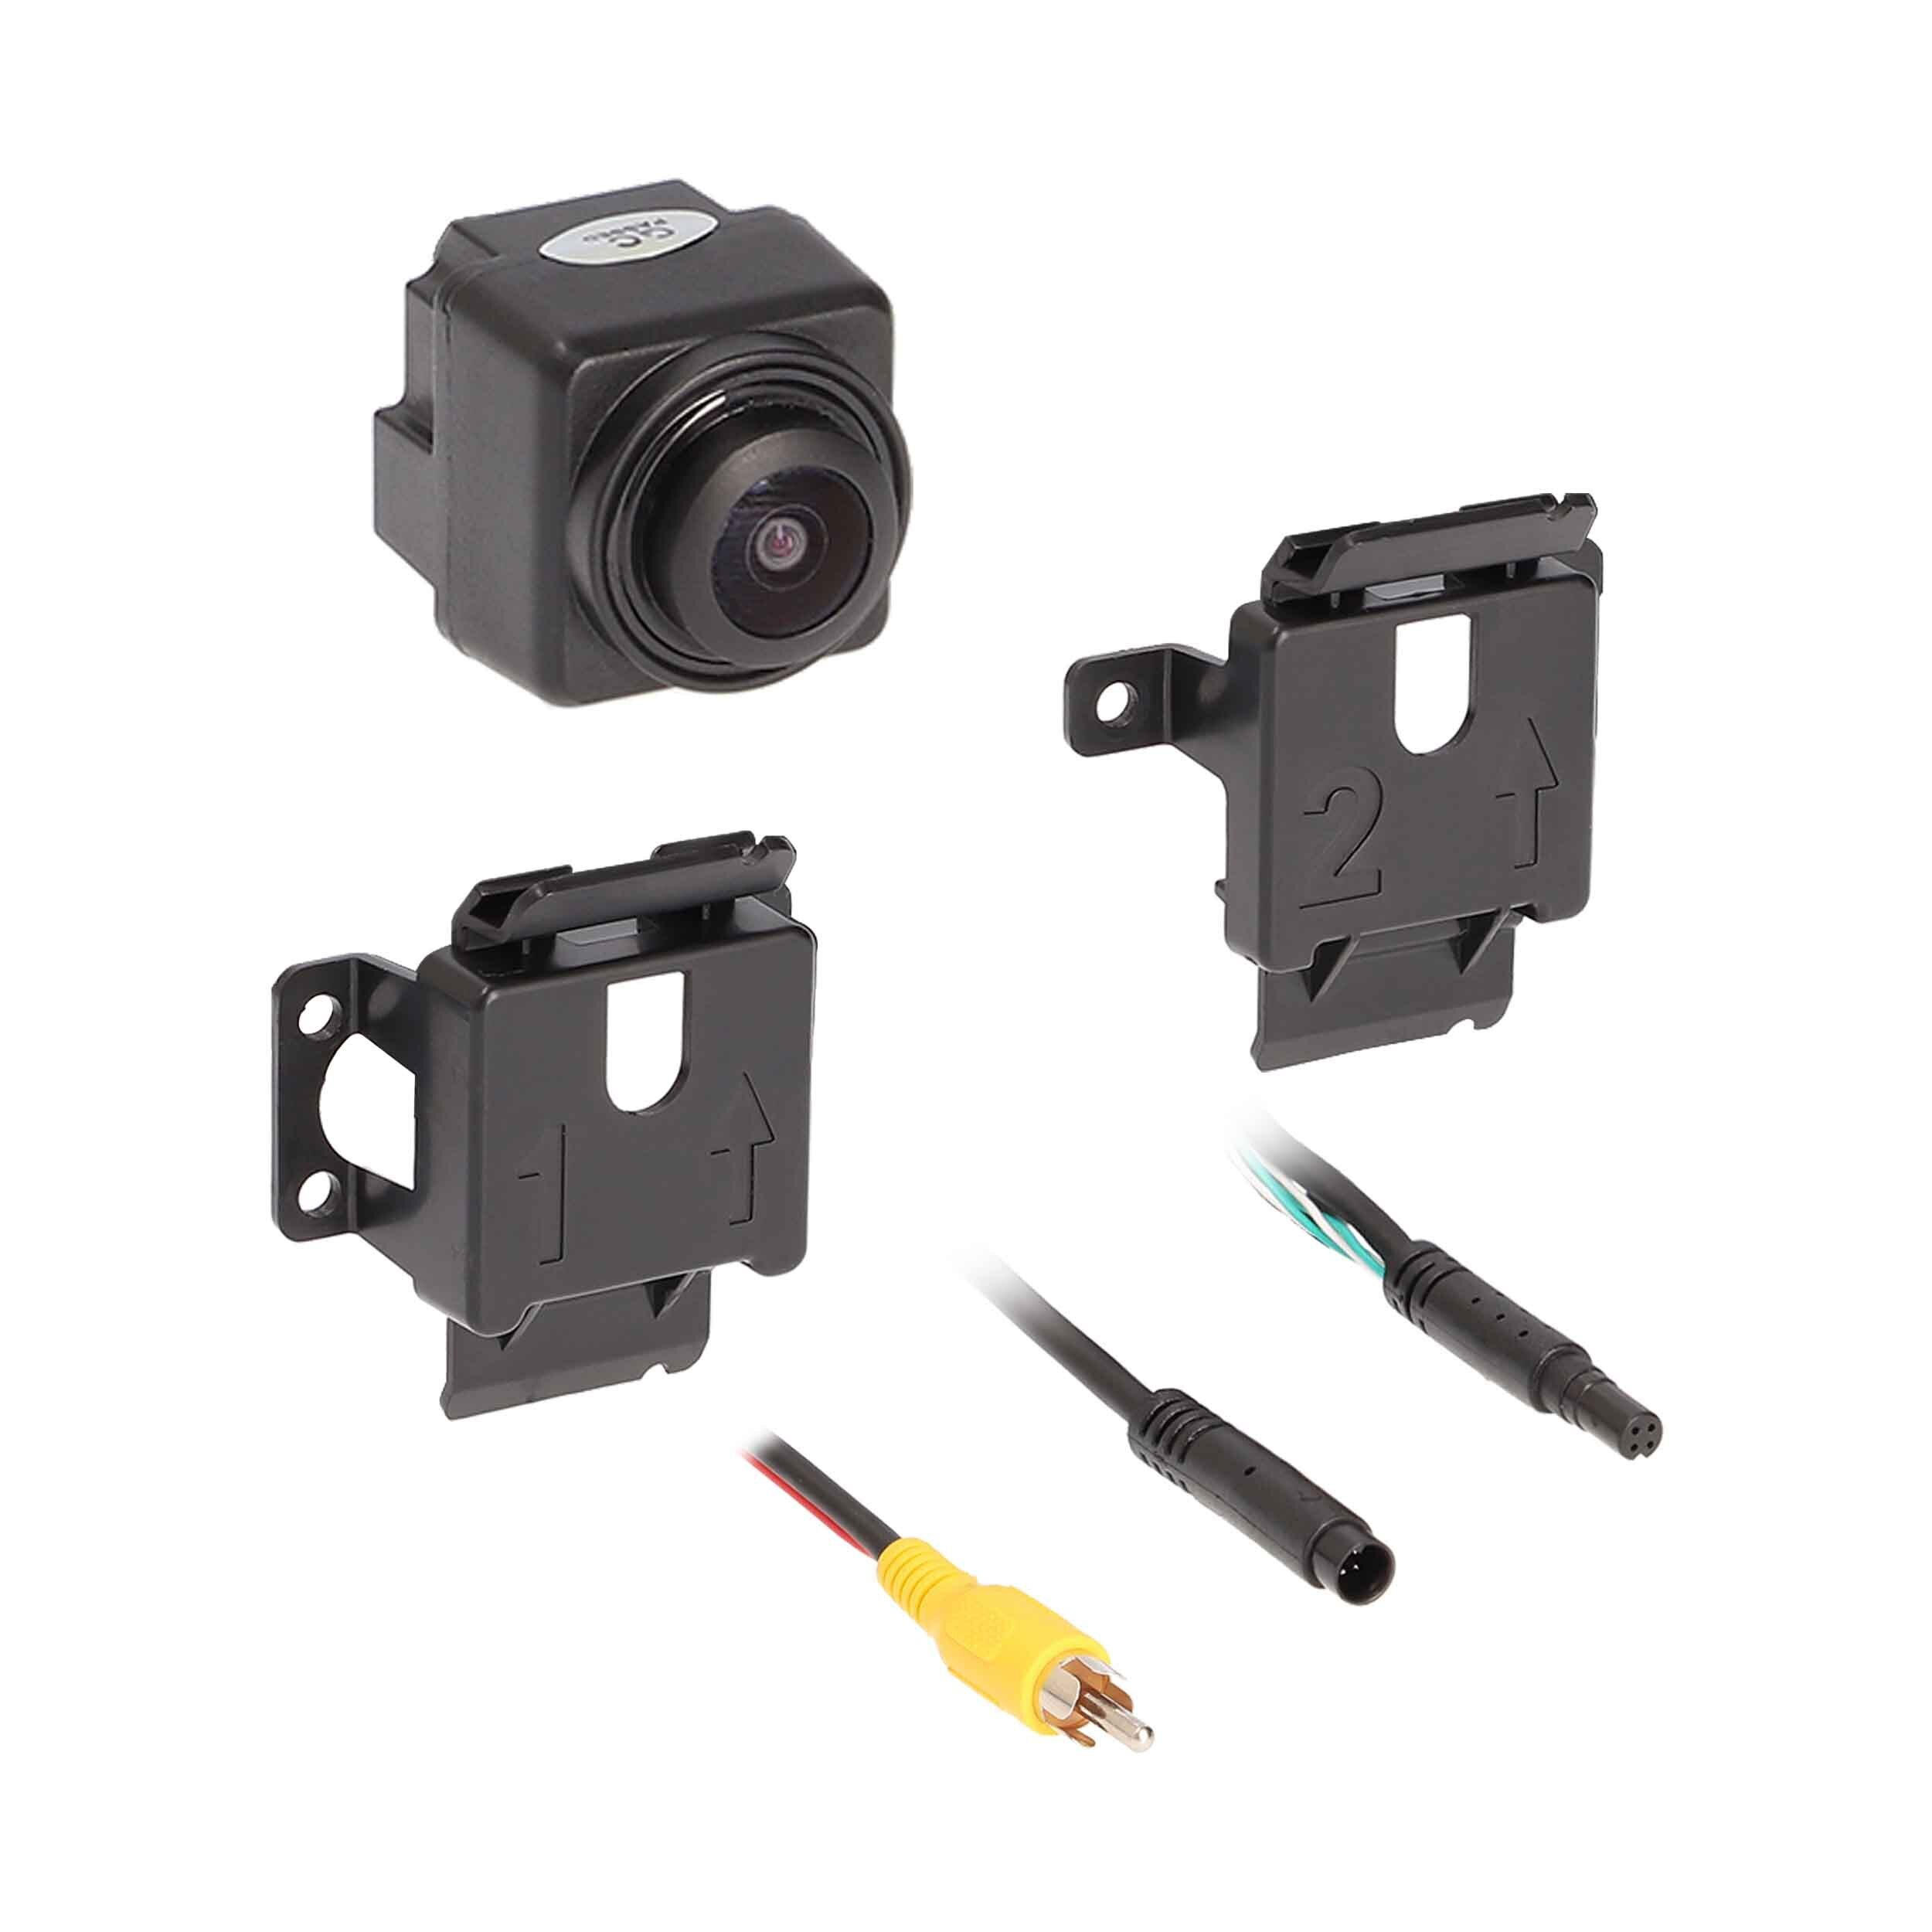 Jeep Gladiator JT 2020-up Backup Camera Replacement Kit